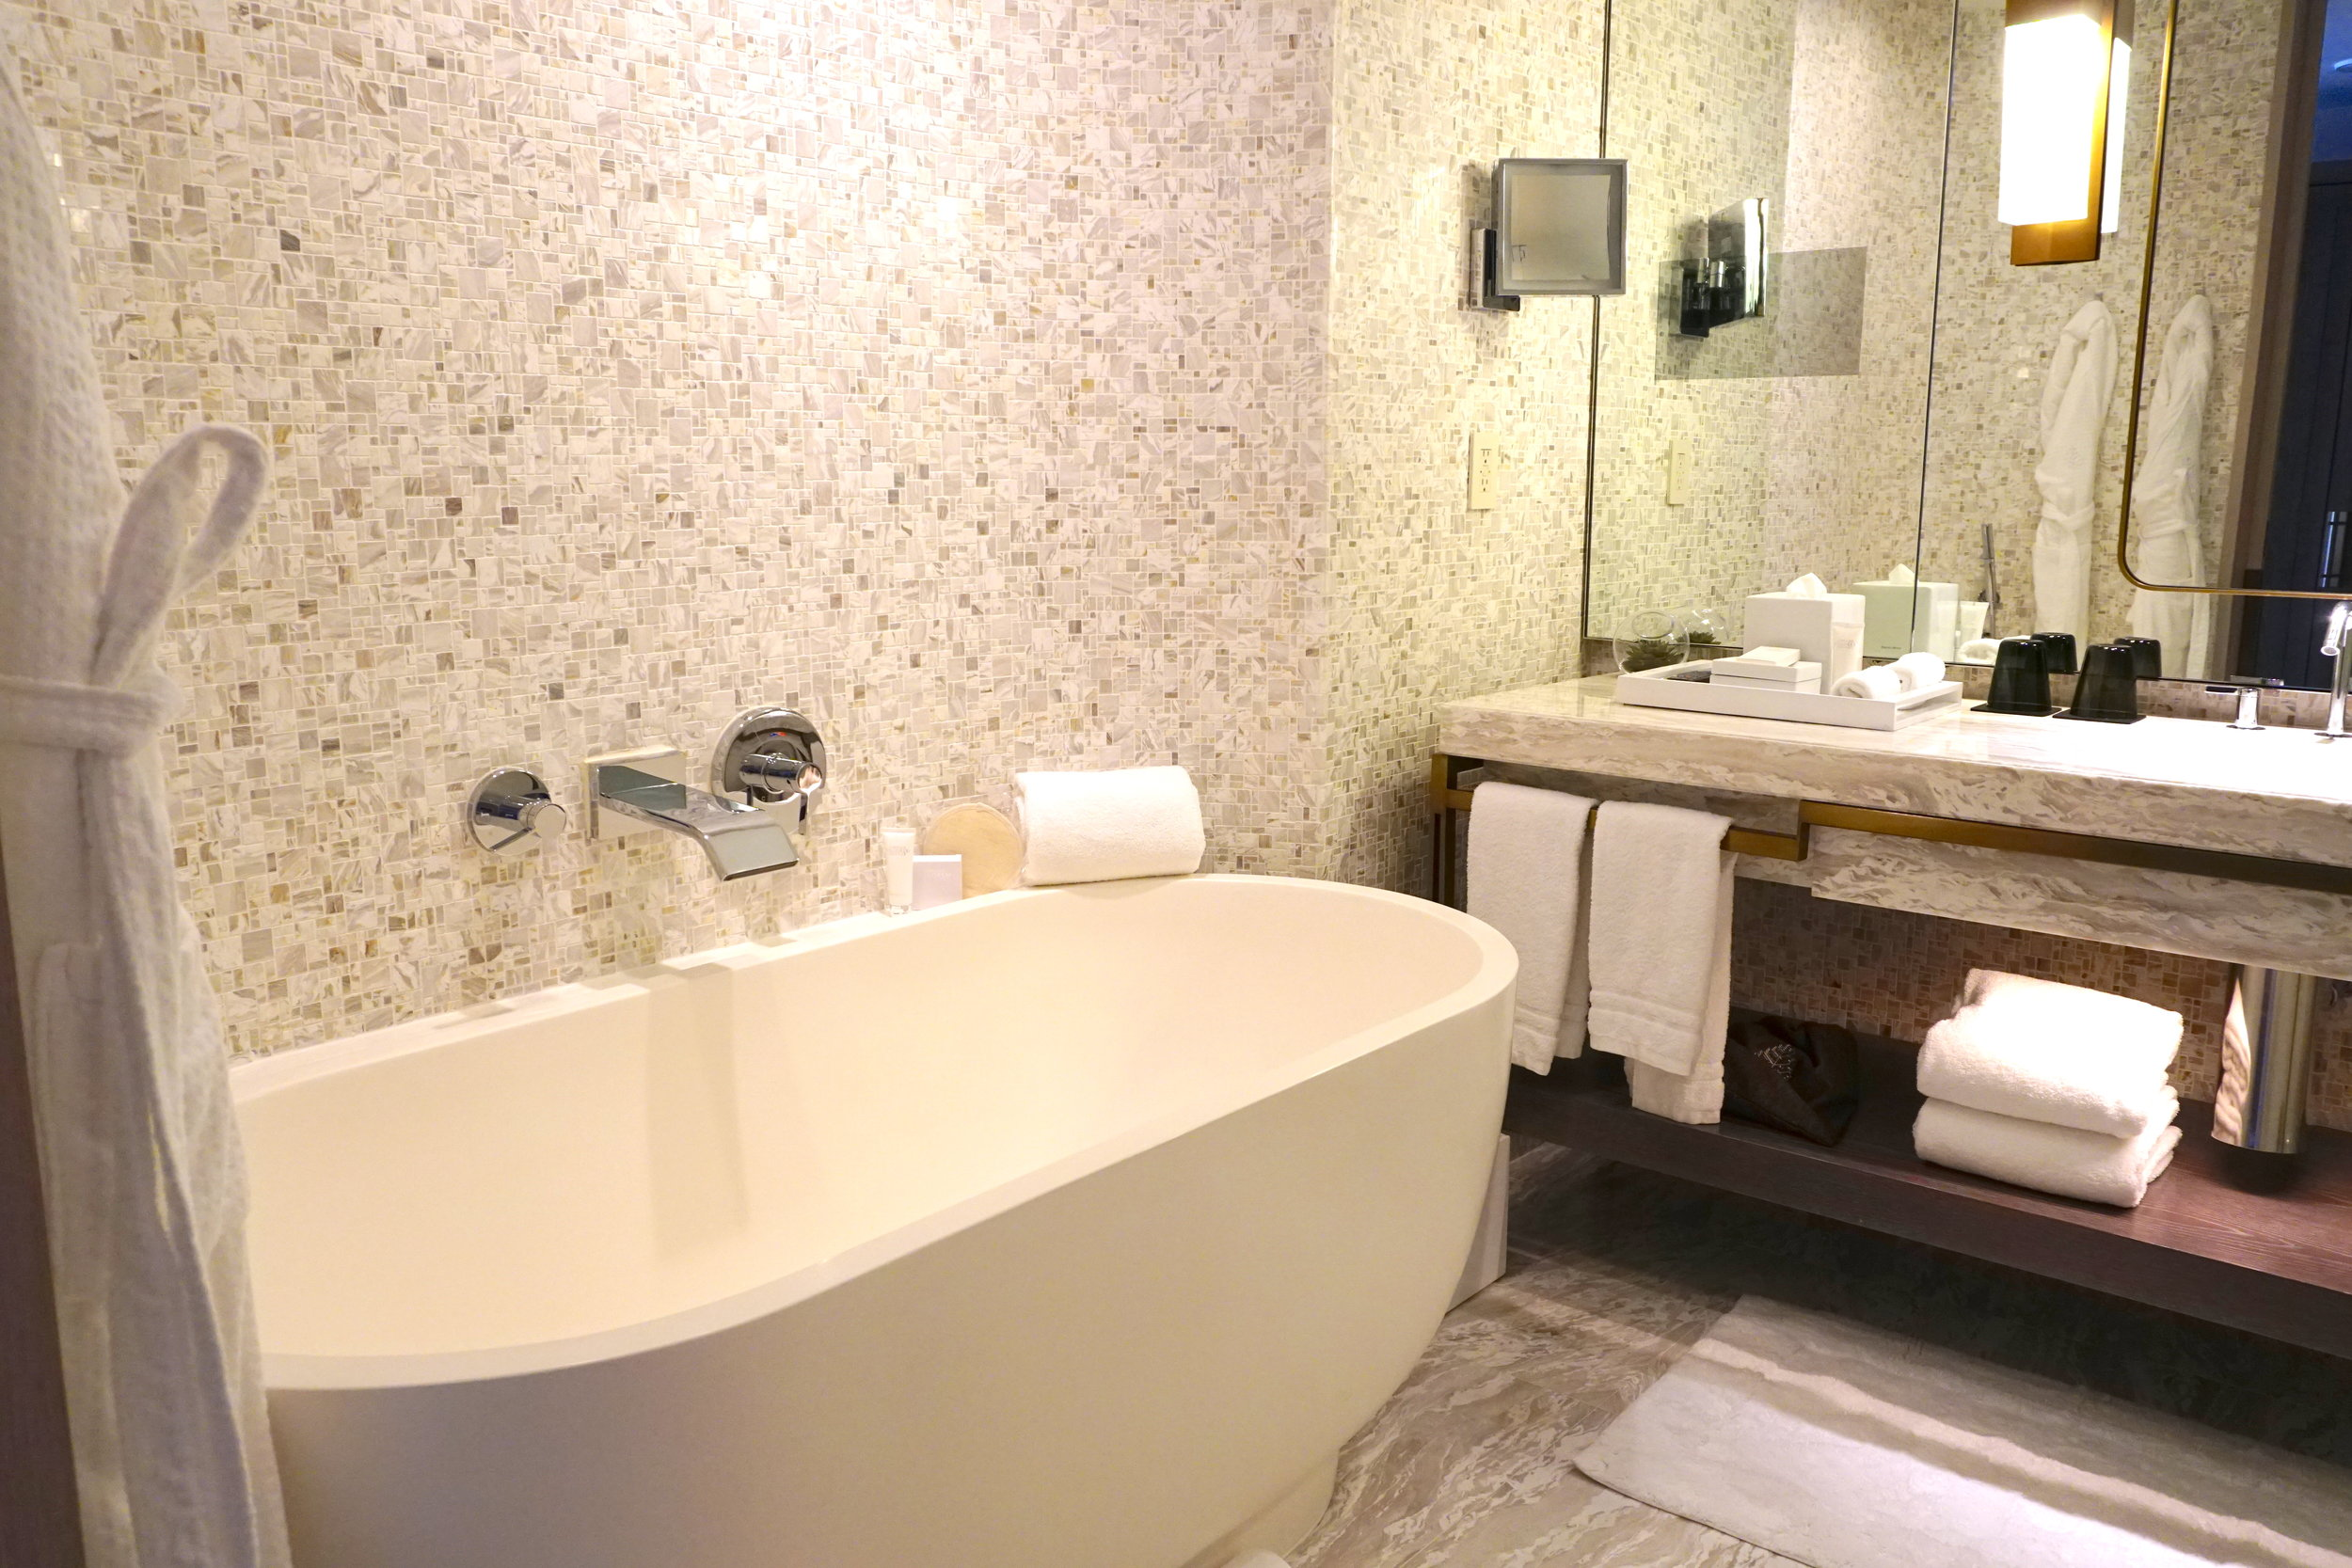 The marble-clad bathrooms at the Four Seasons Hotel New York Downtown